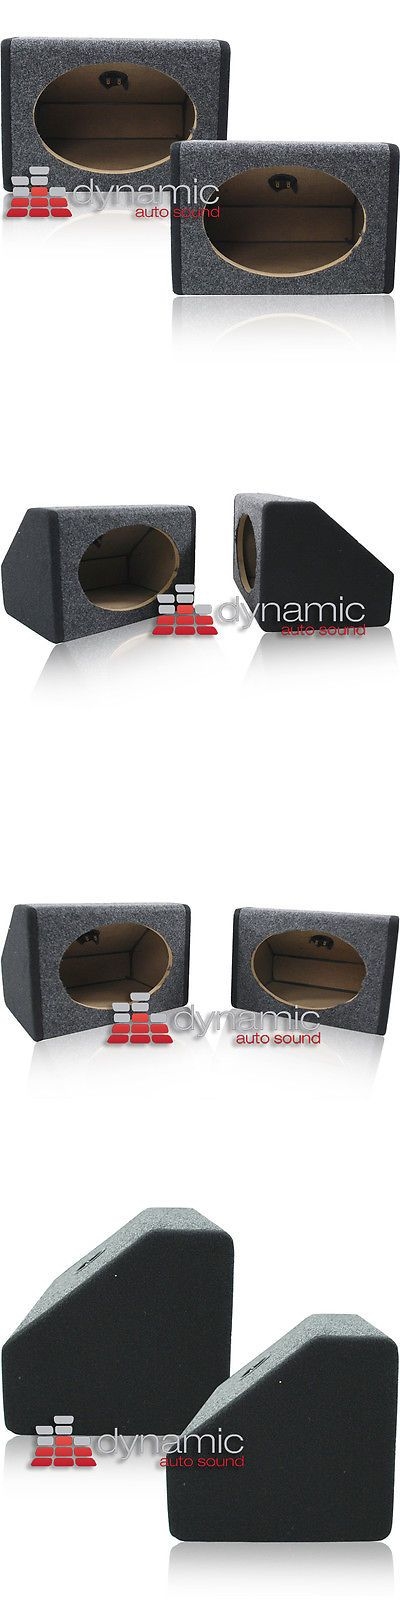 "Other Car Audio: Car Audio 6""X9"" Truck Angled Speaker Enclosure Mdf Sealed Box Speakers Pair New -> BUY IT NOW ONLY: $37.99 on eBay!"